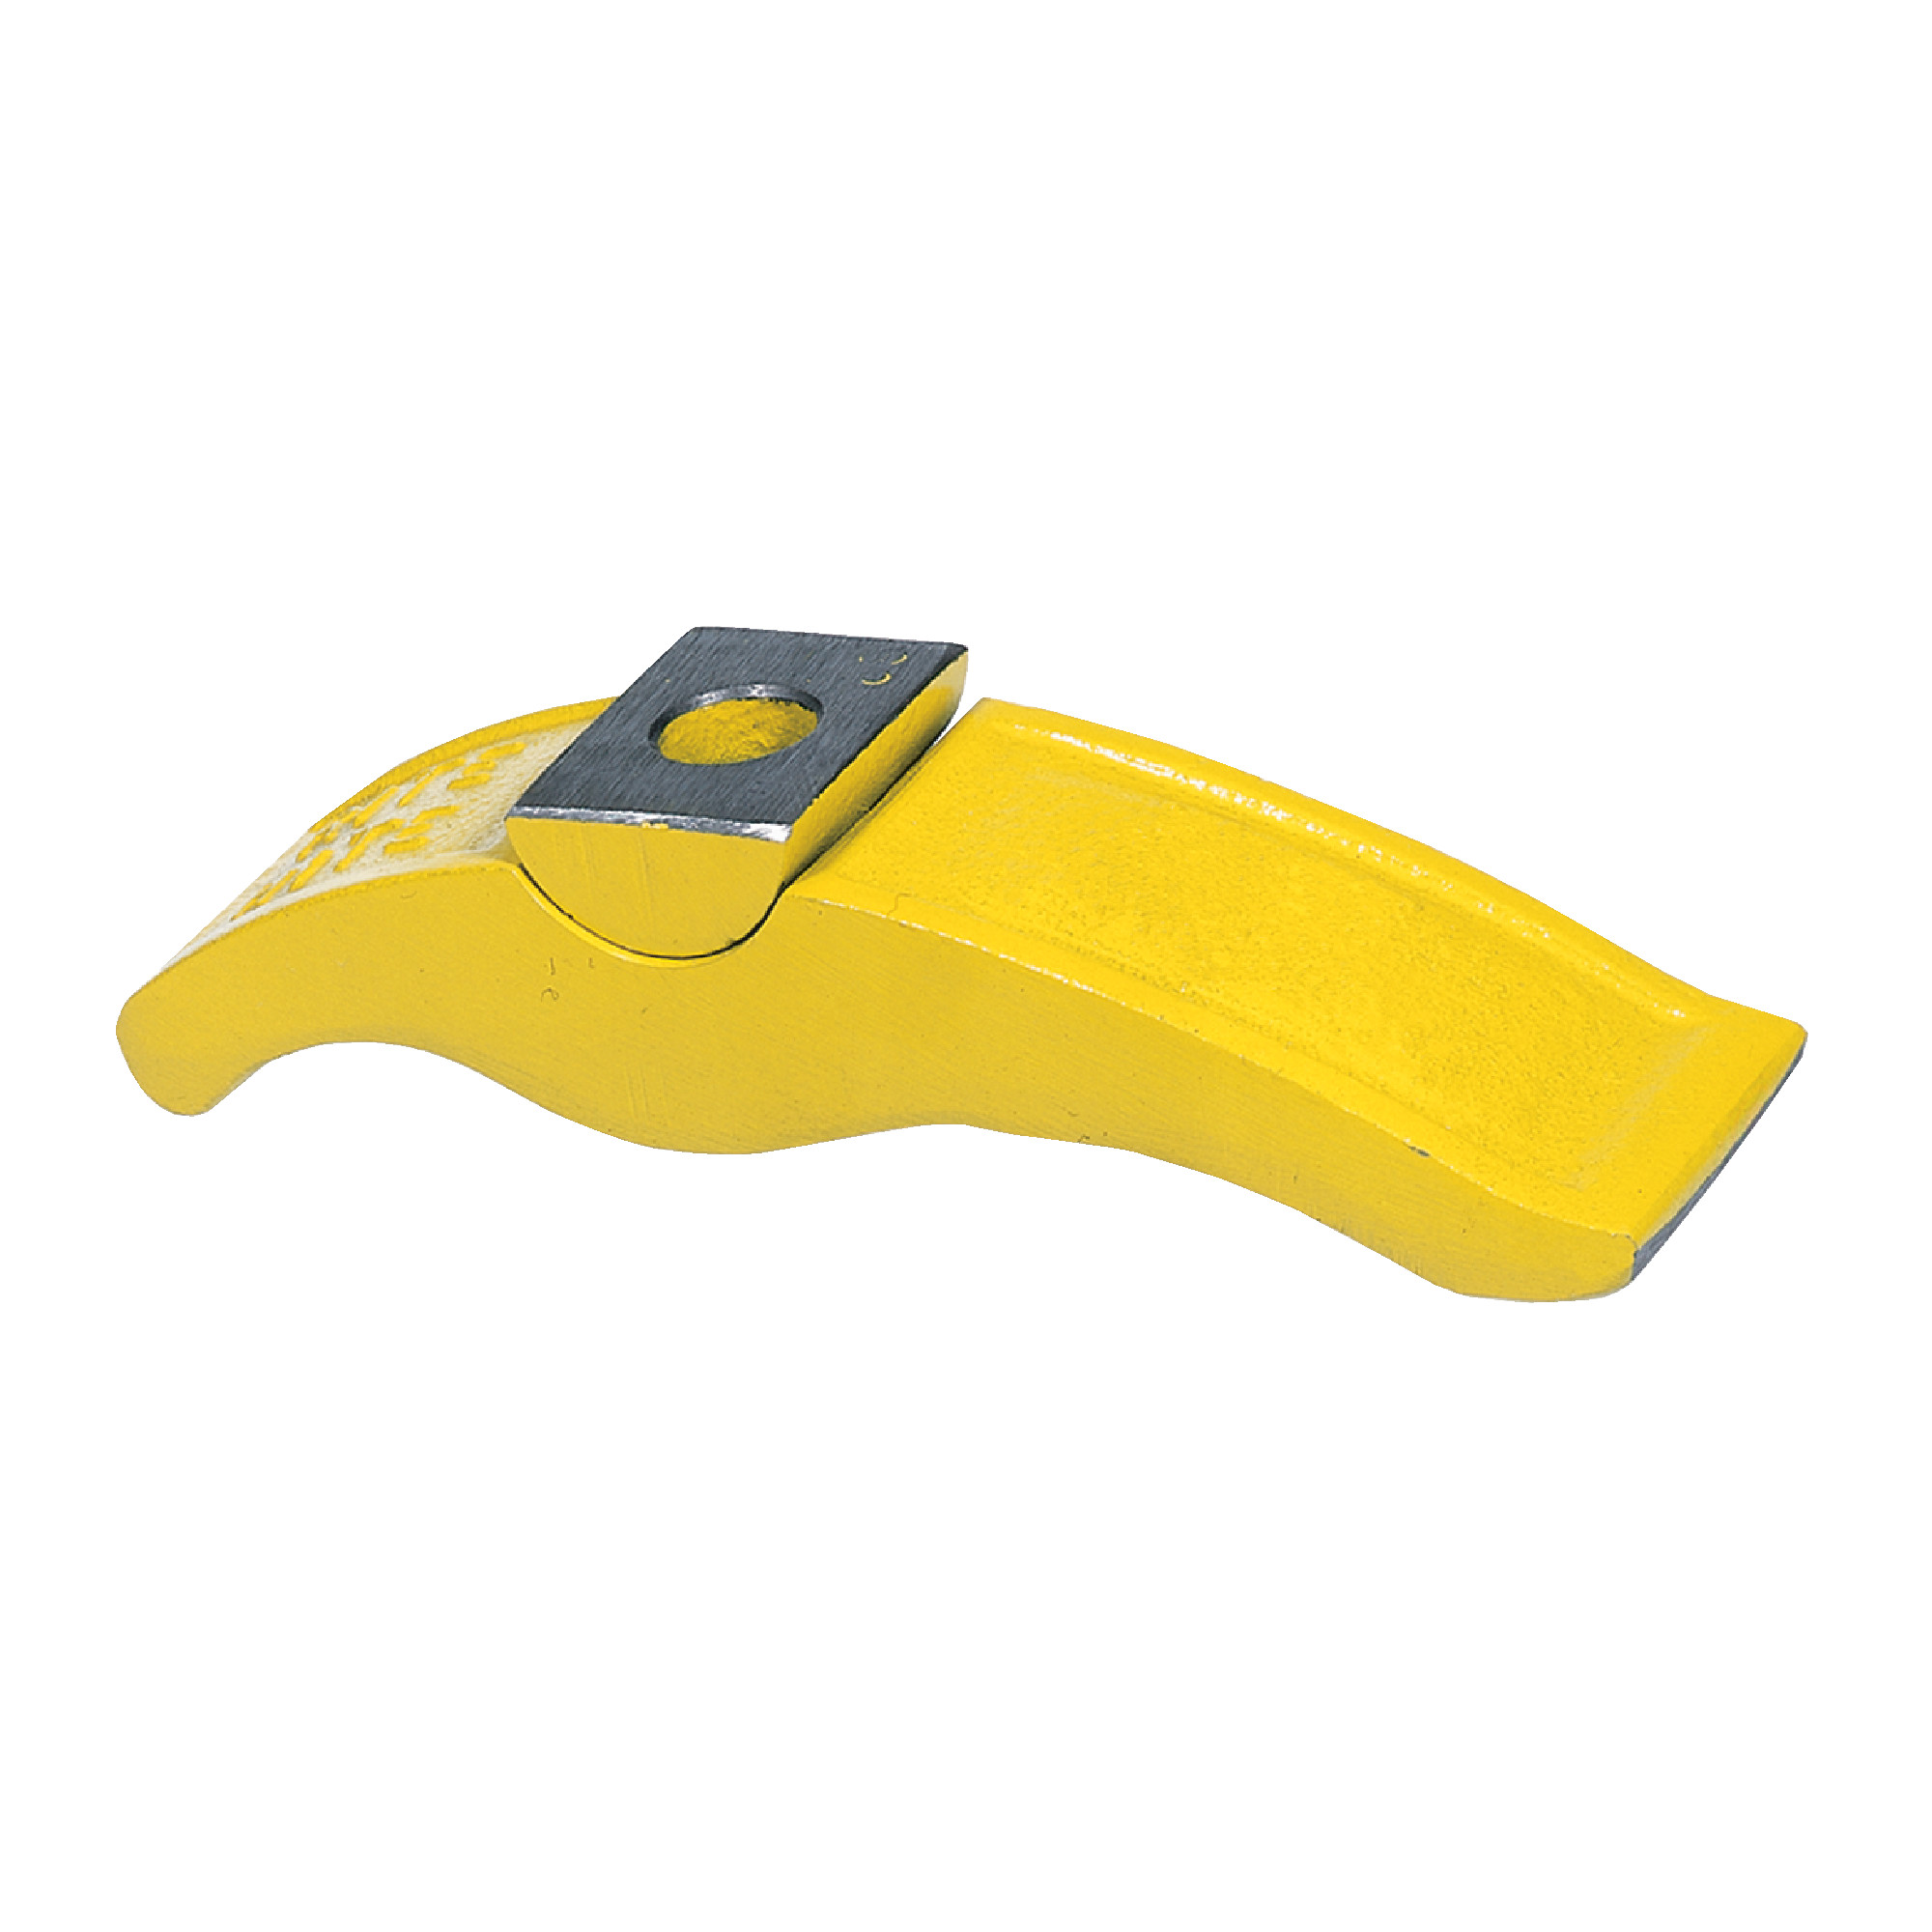 Rite Hite Self-Positioning Hold-Down Clamp